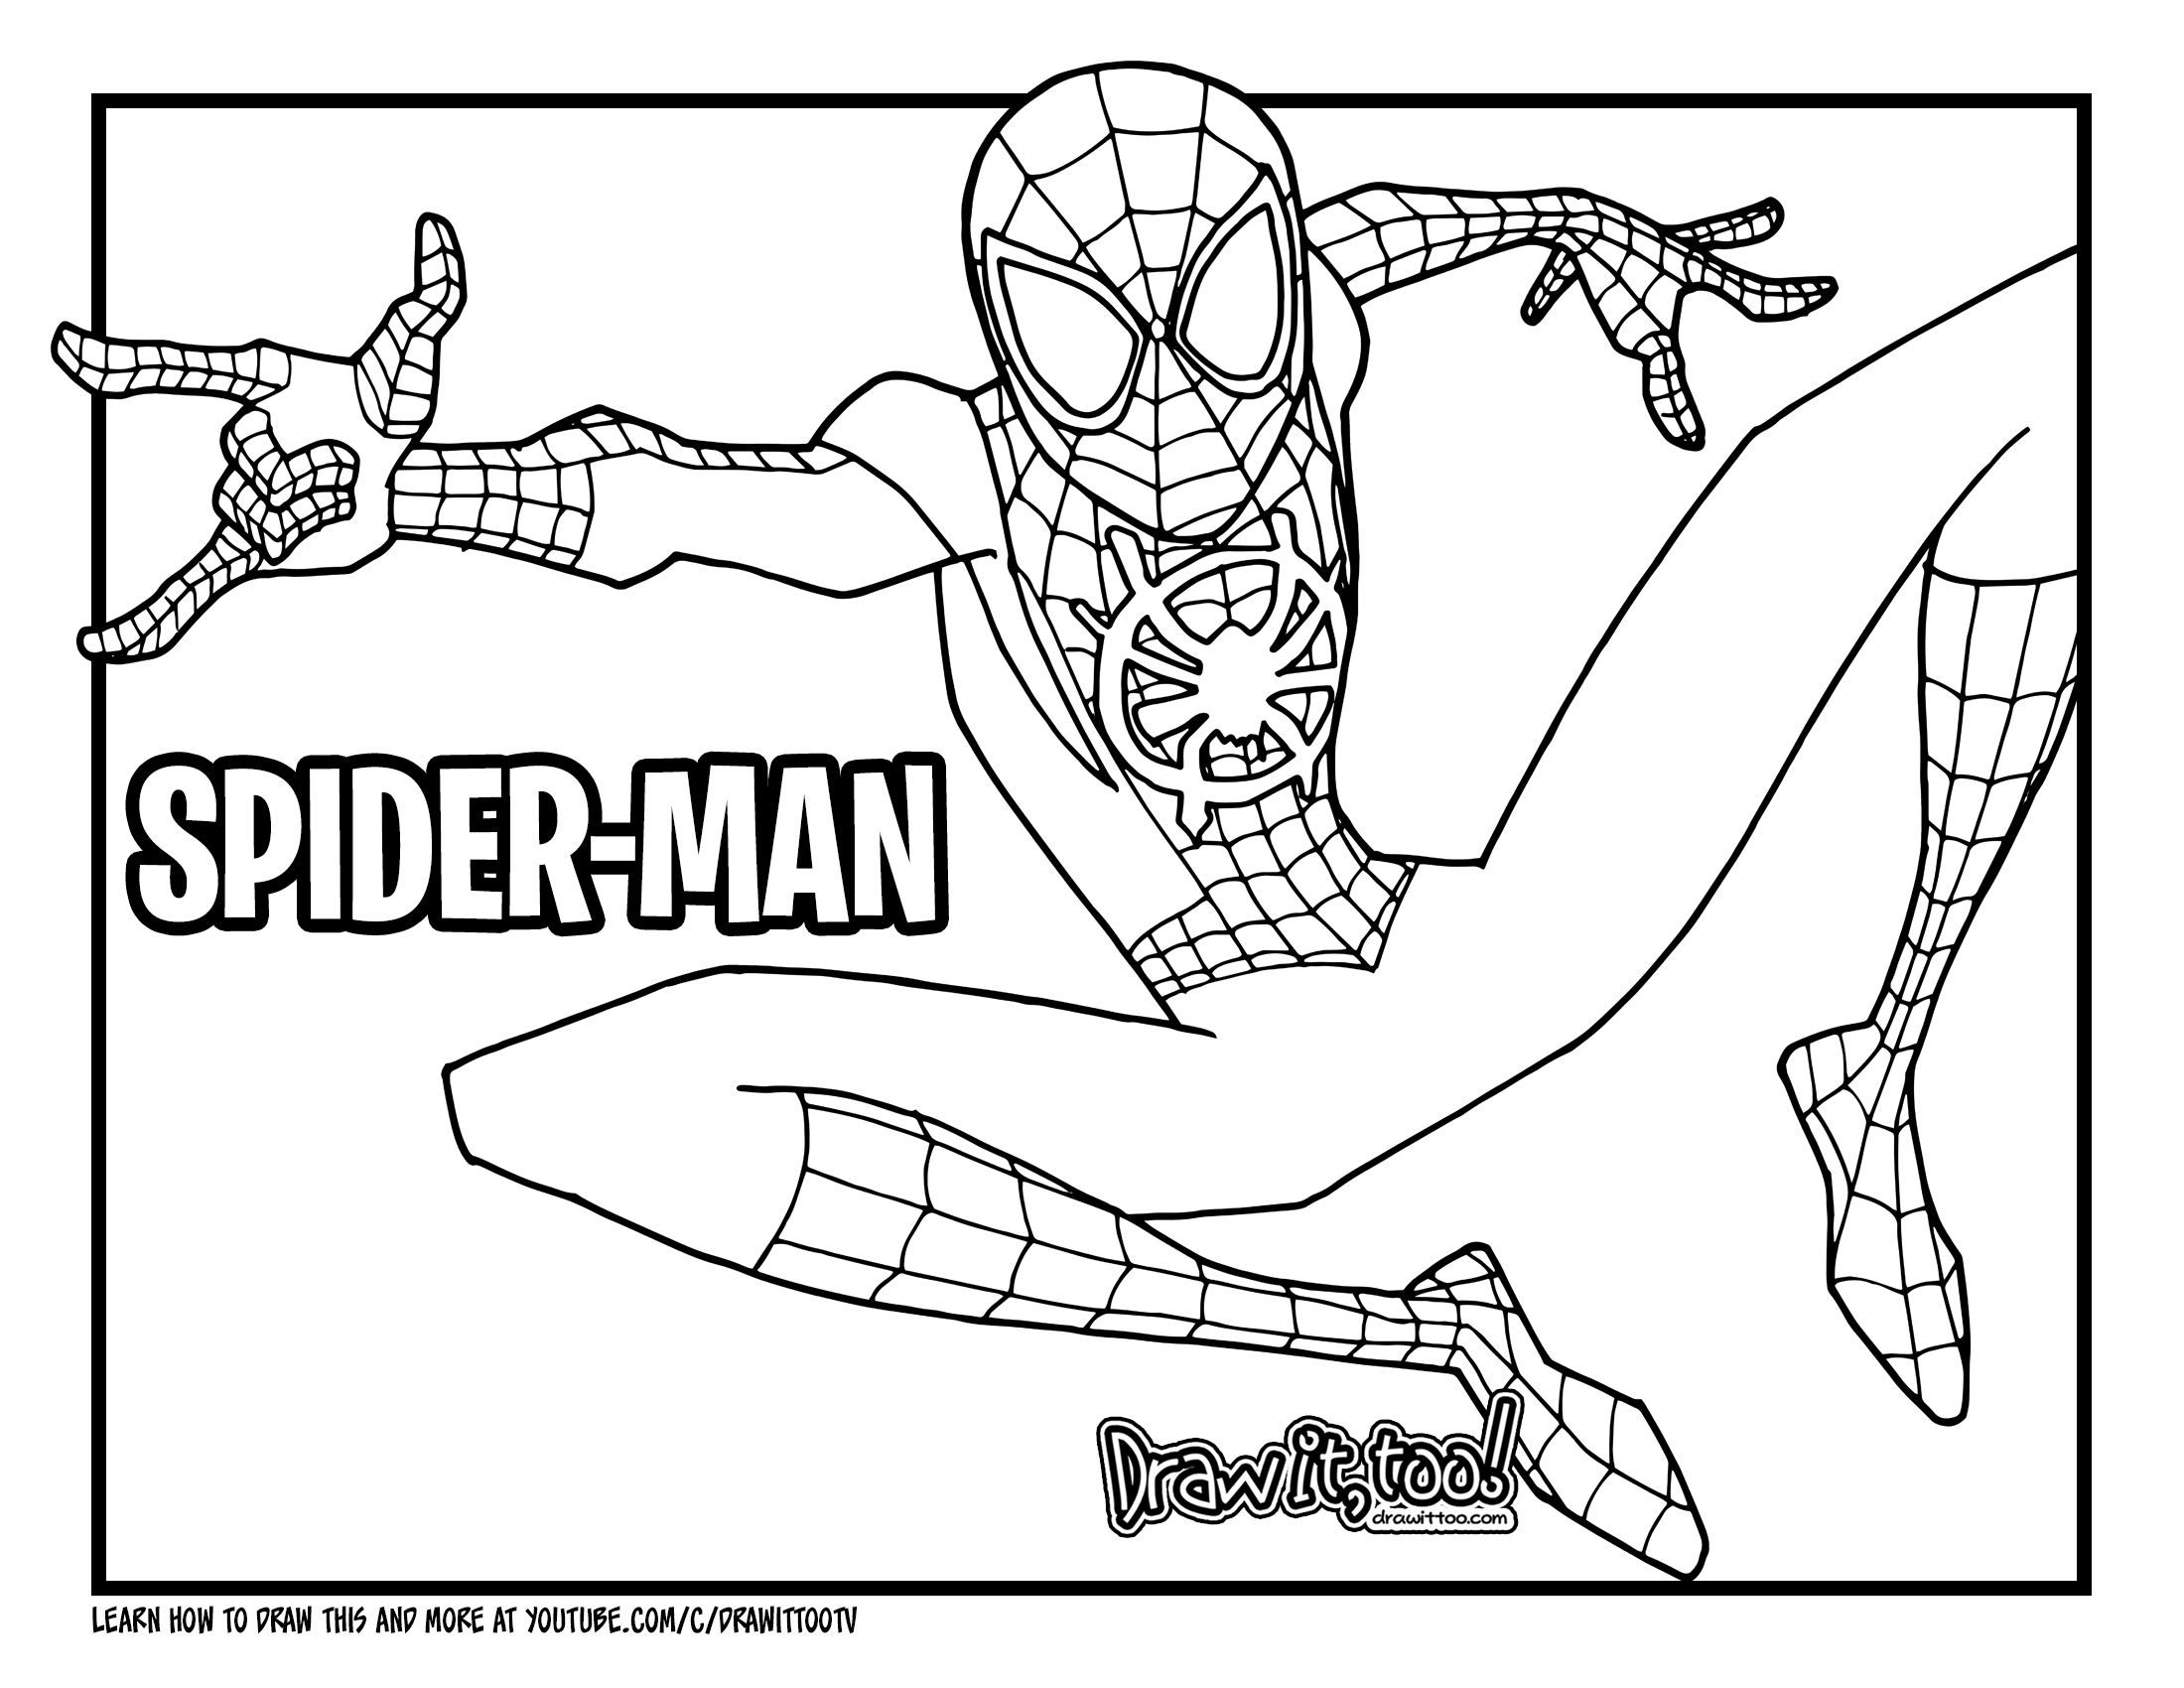 Spider Man Into The Spider Verse Is Just Around The Corner And With That I Think It S About Time We Draw The Spiderman Coloring Coloring Books Coloring Pages